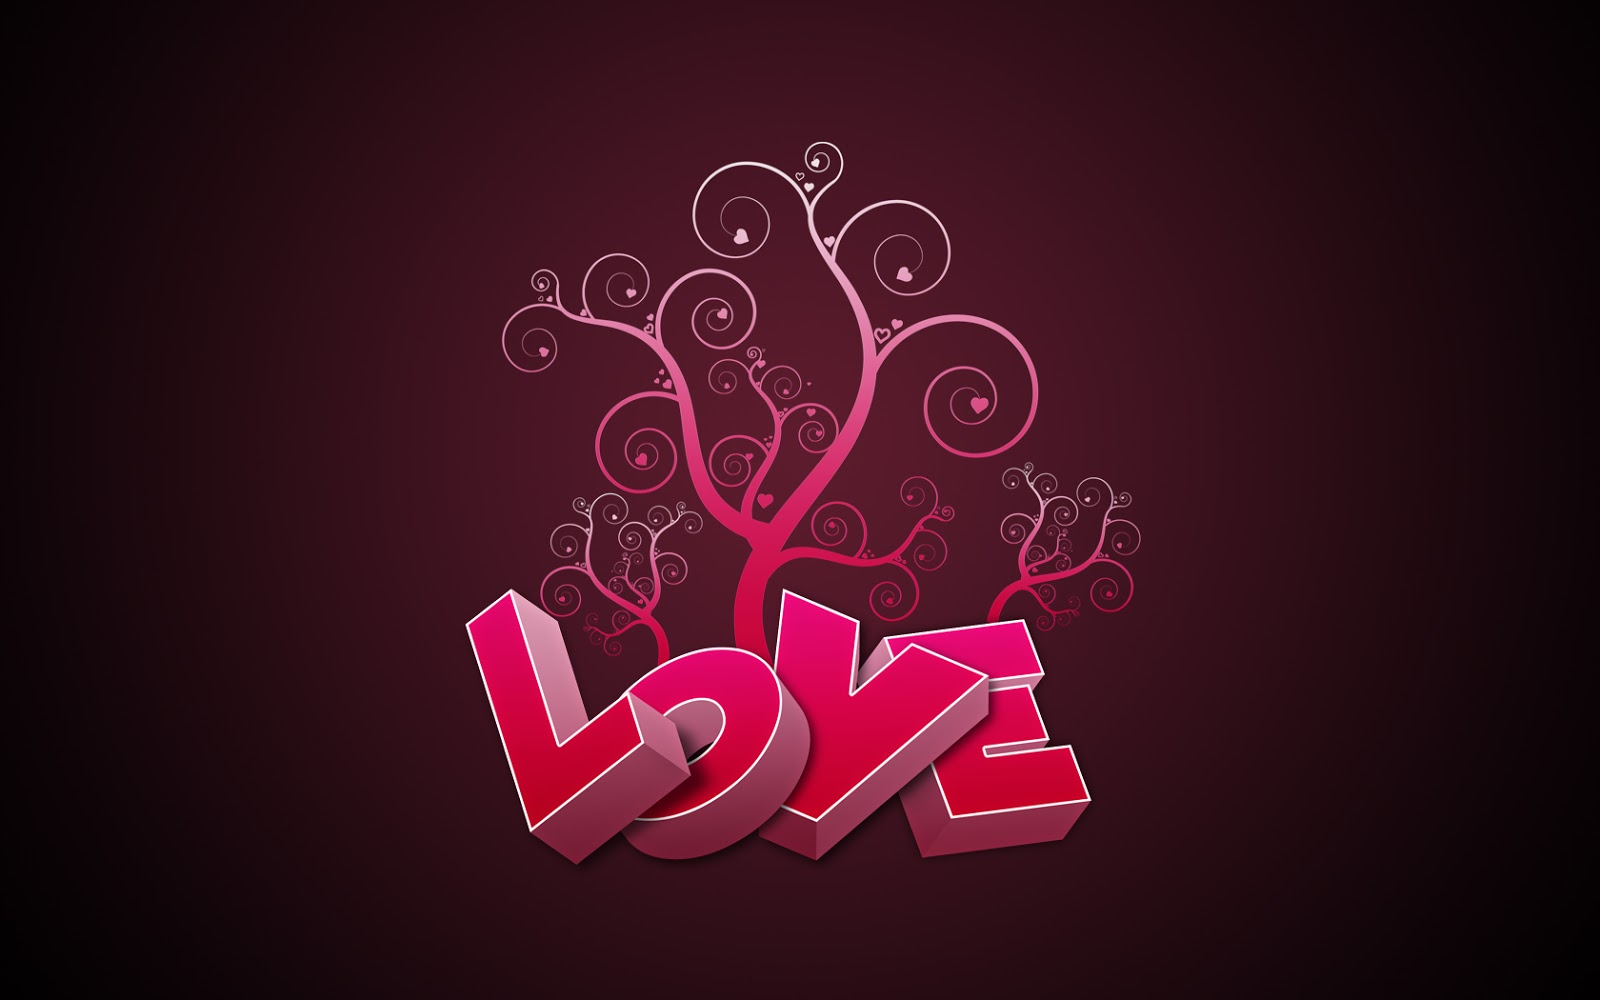 desktop 1080p hd love - photo #10